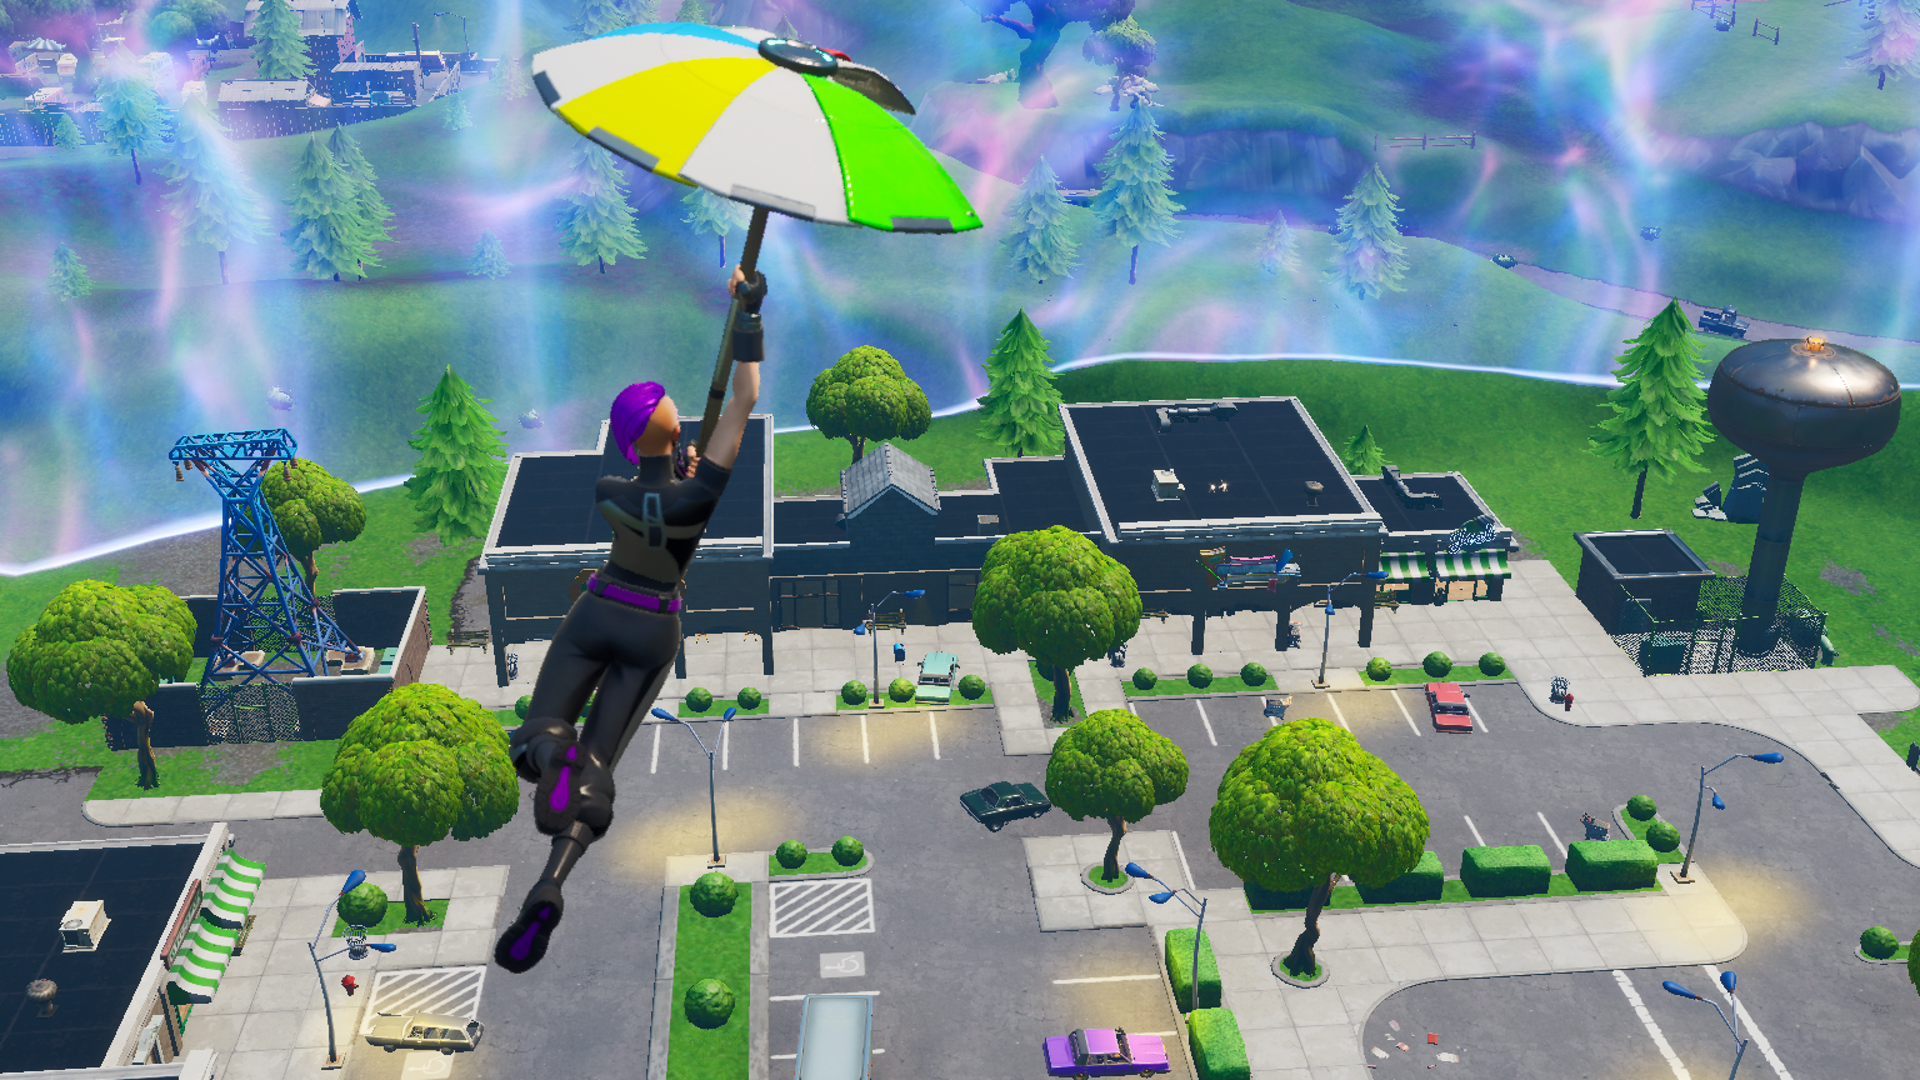 Fortnite patch 10 10 brings back Retail Row, reduces mech